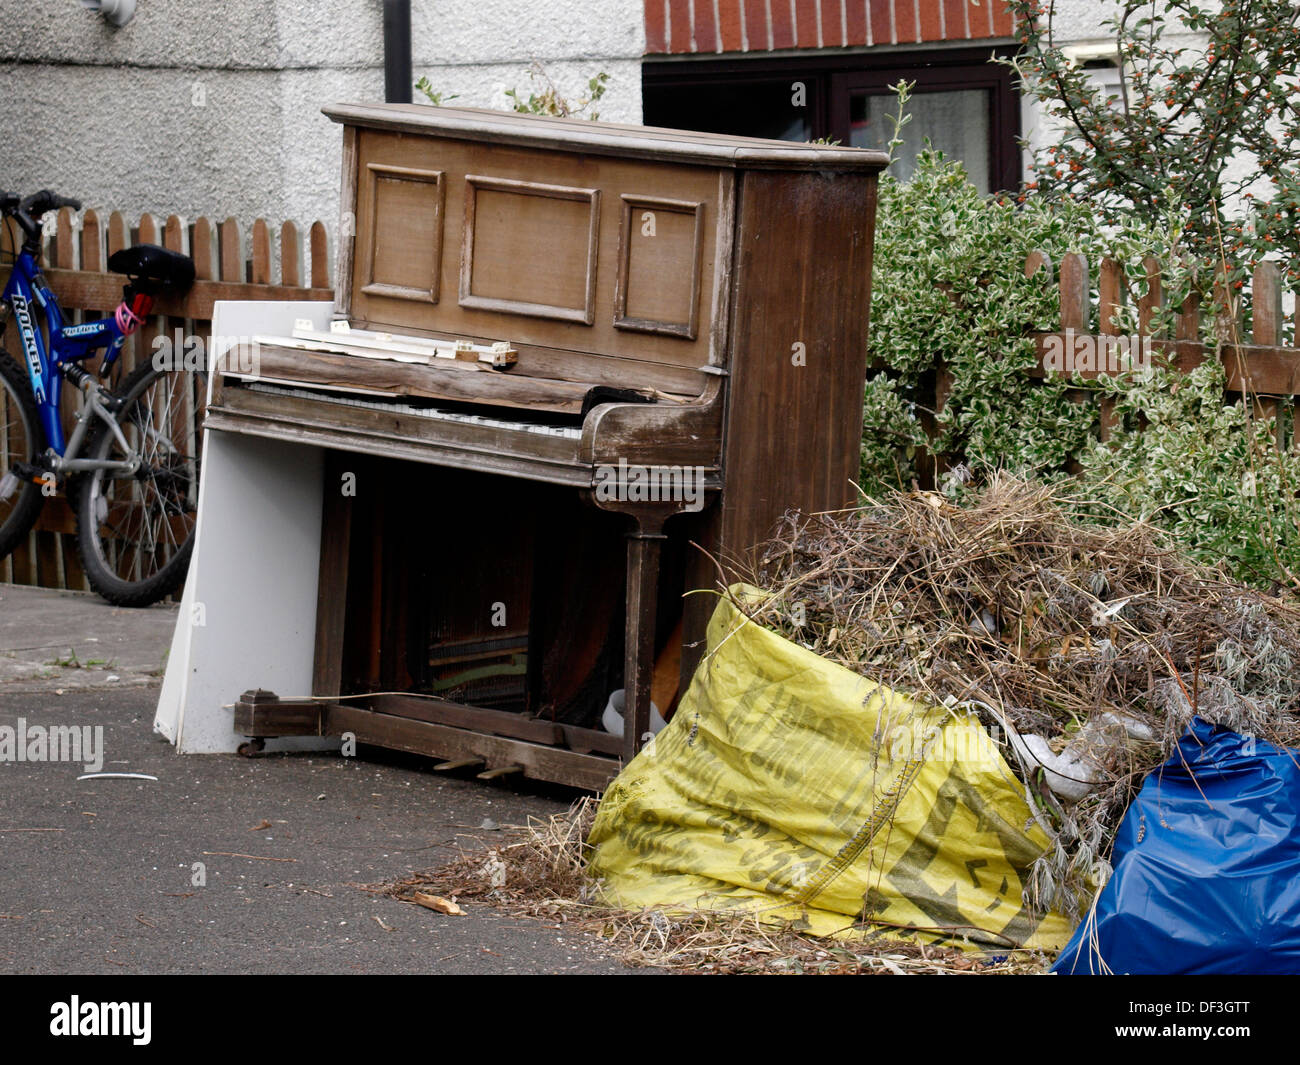 Old piano thrown out with the rubbish, Bude, Cornwall, UK 2013 - Stock Image